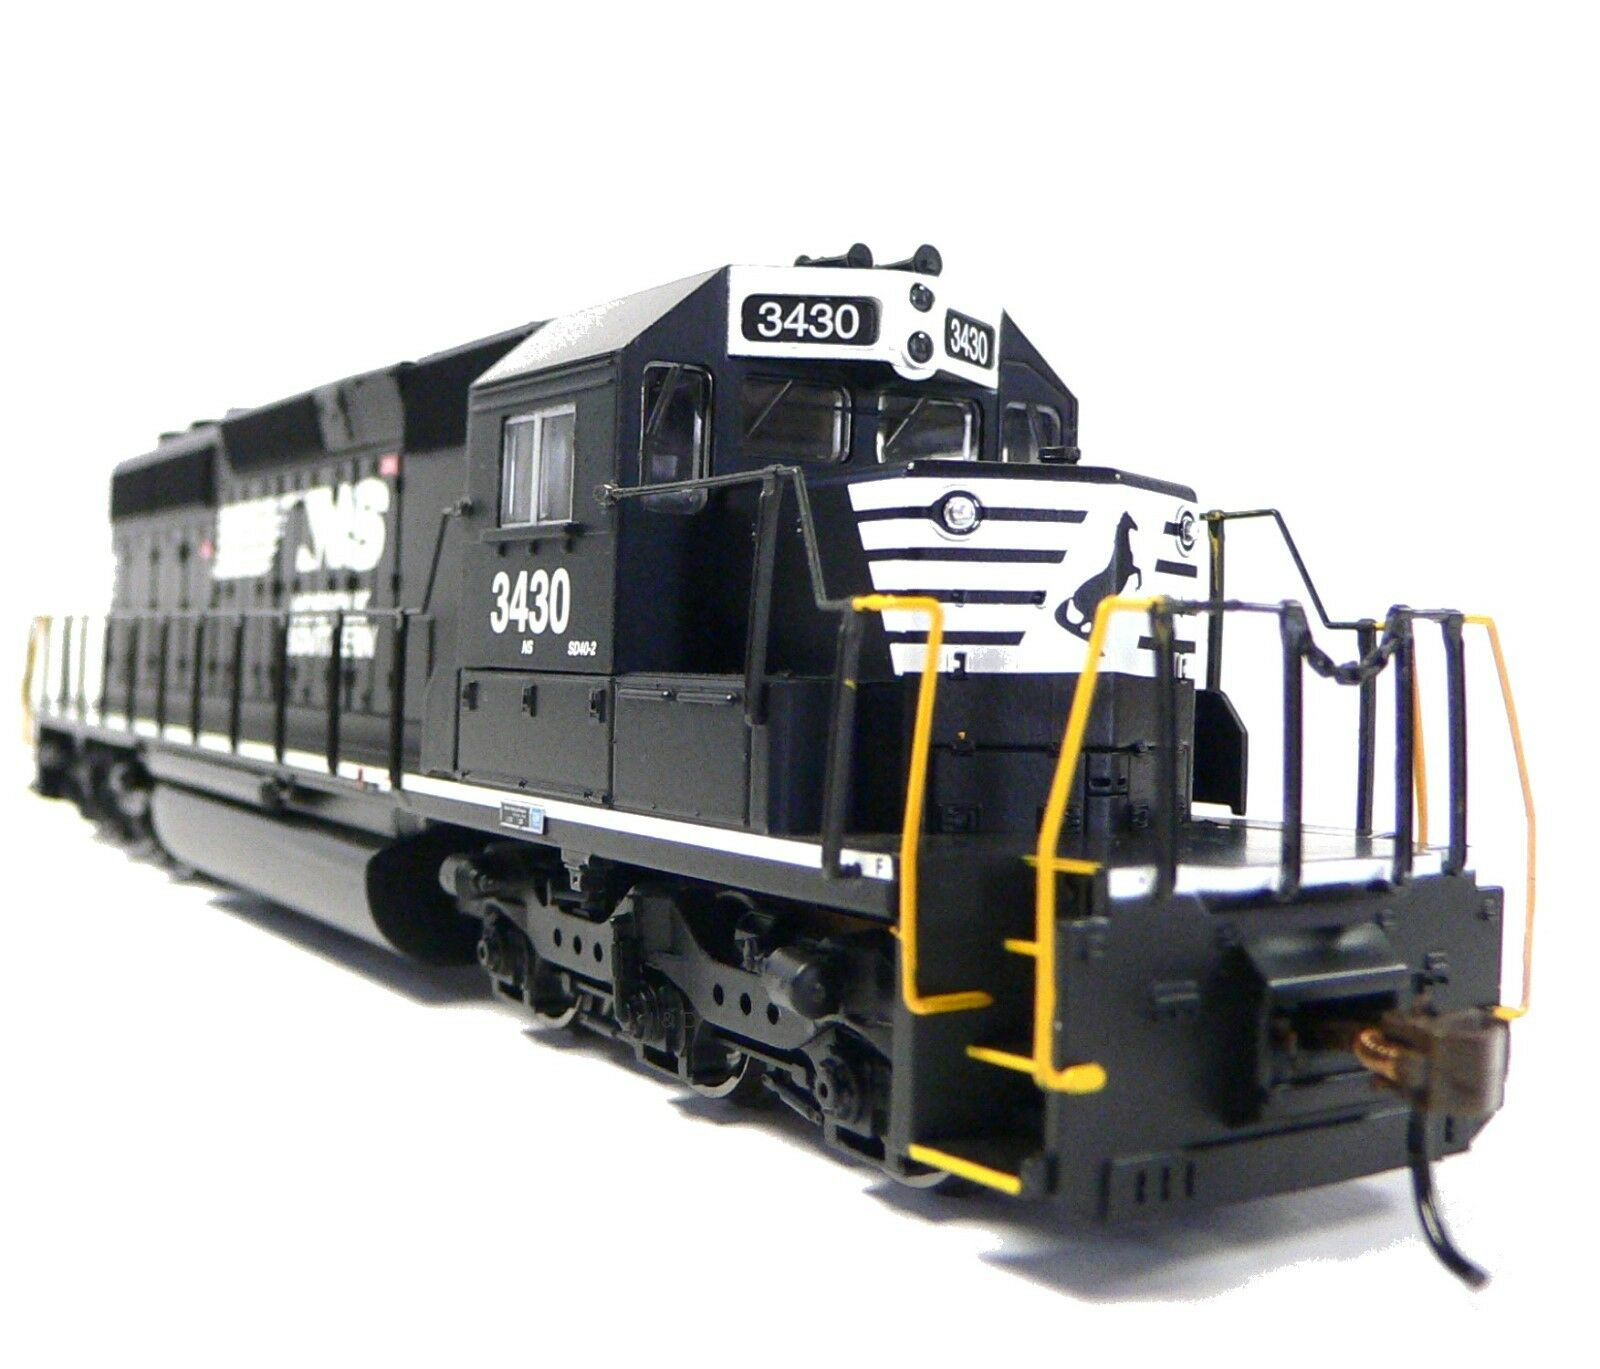 On30 CAN MOTOR UPGRADE KIT FOR MANTUA 2-6-6-2 LOCOMOTIVE CHASSIS